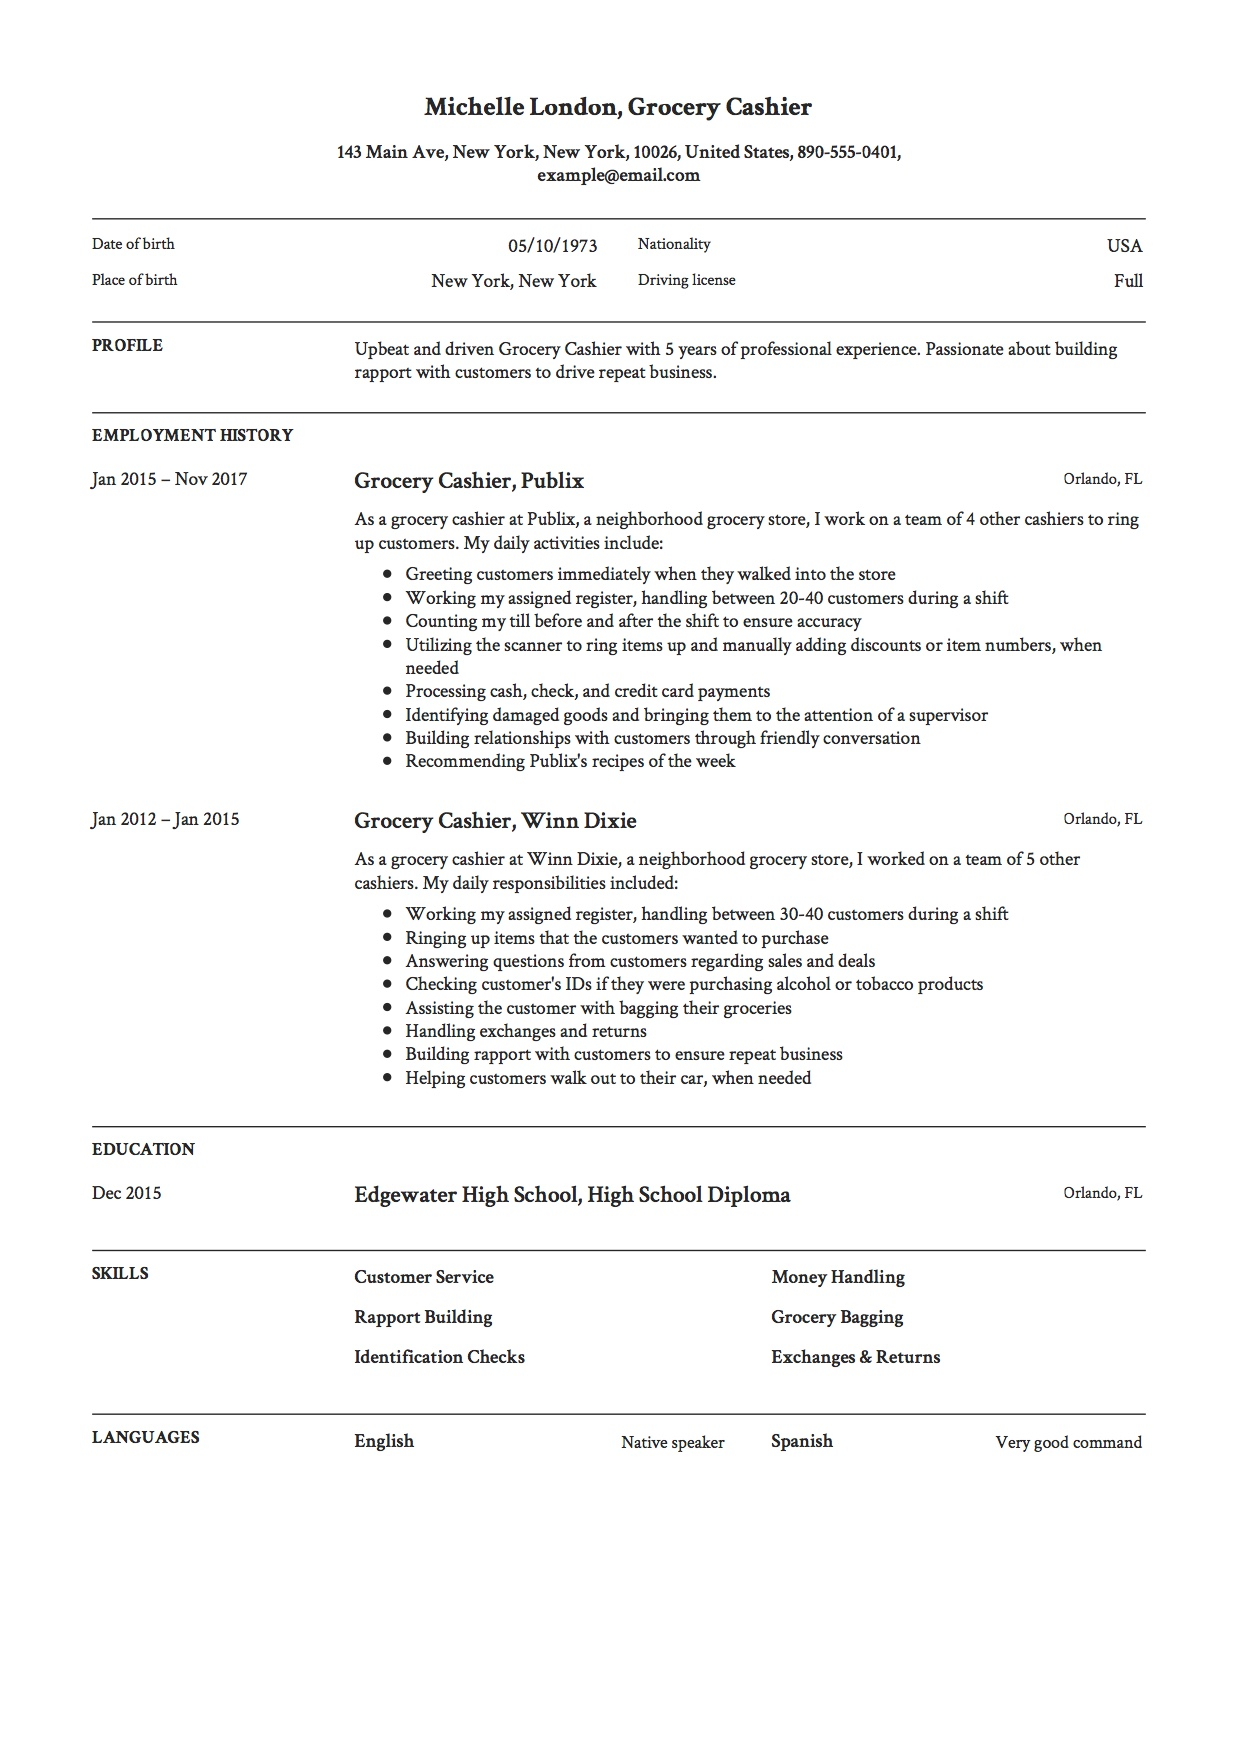 Cashier Job Experience Resume 12 Grocery Cashier Resume Sample S 2018 Free Downloads